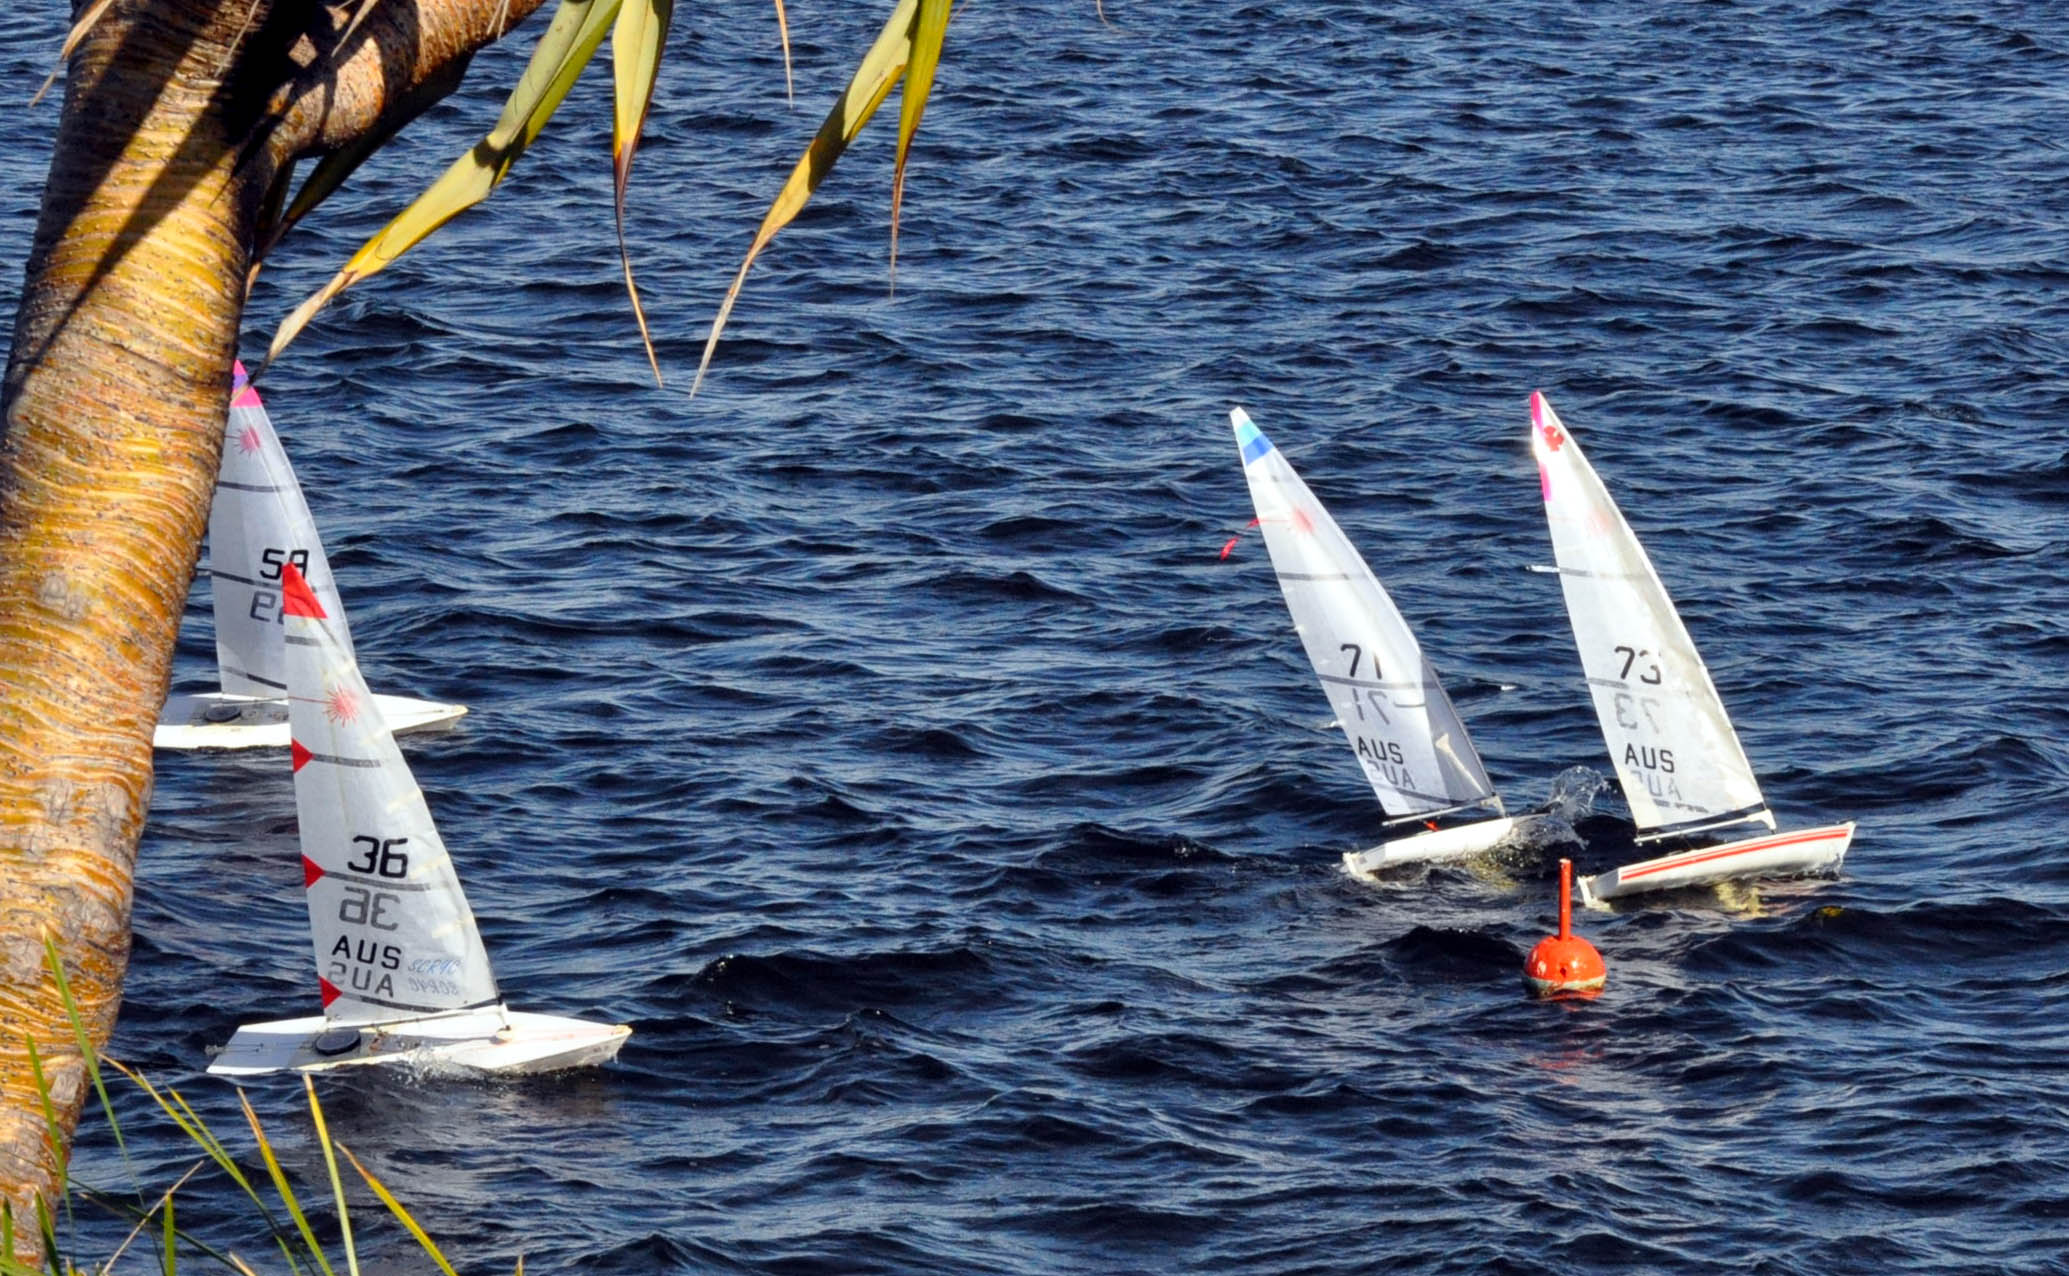 Queensland RC laser state championships